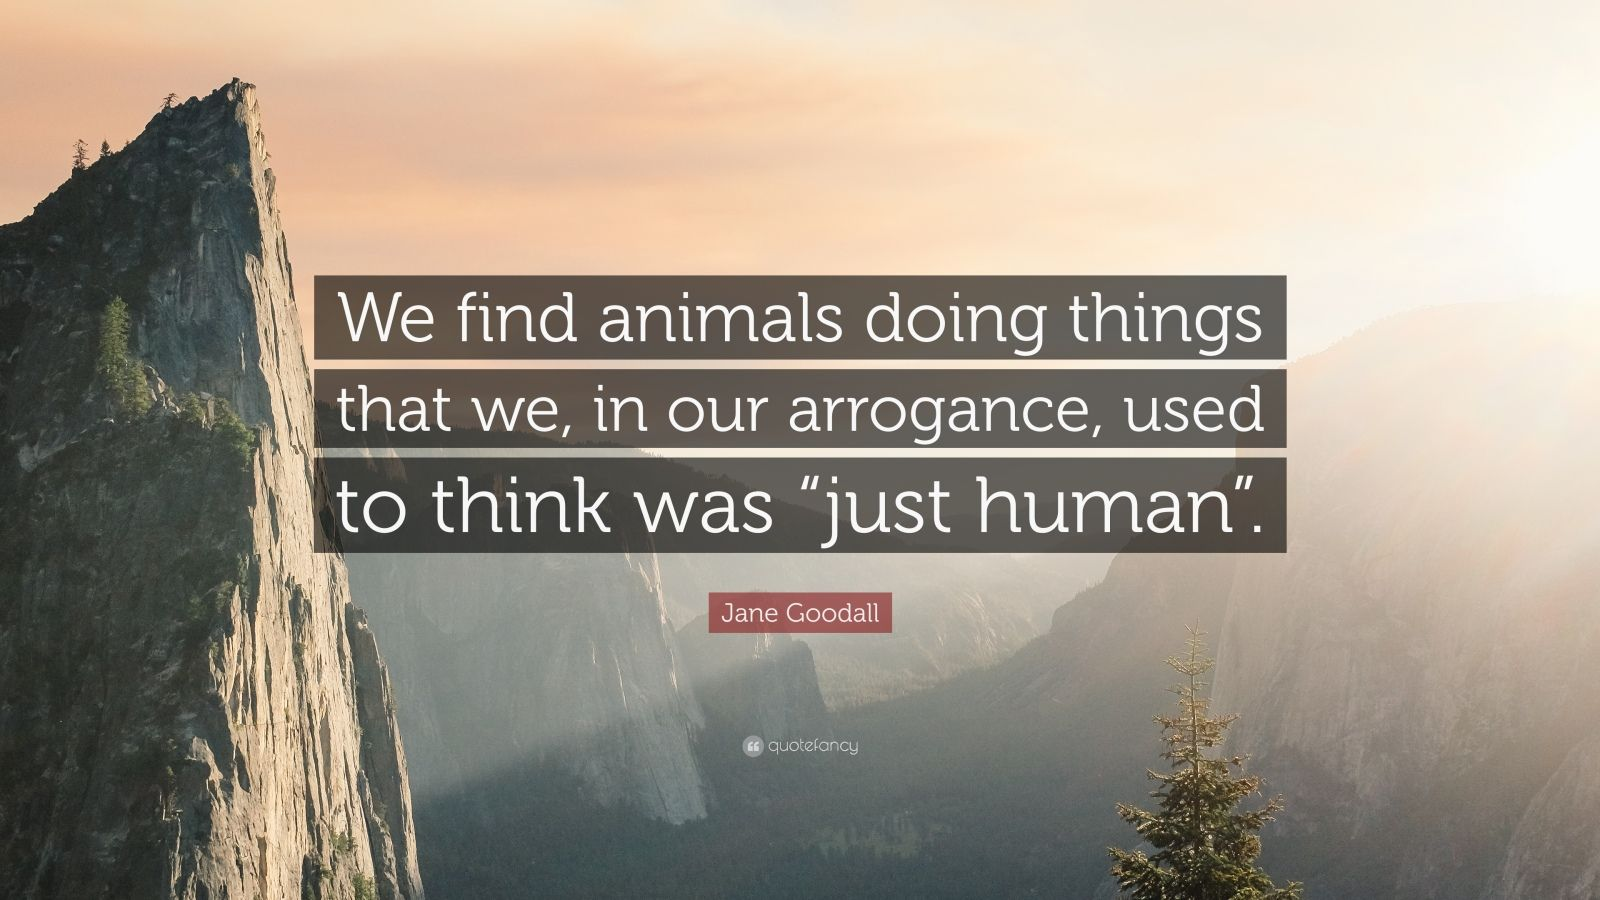 """Jane Goodall Quote: """"We find animals doing things that we, in our arrogance, used to think was """"just human""""."""""""